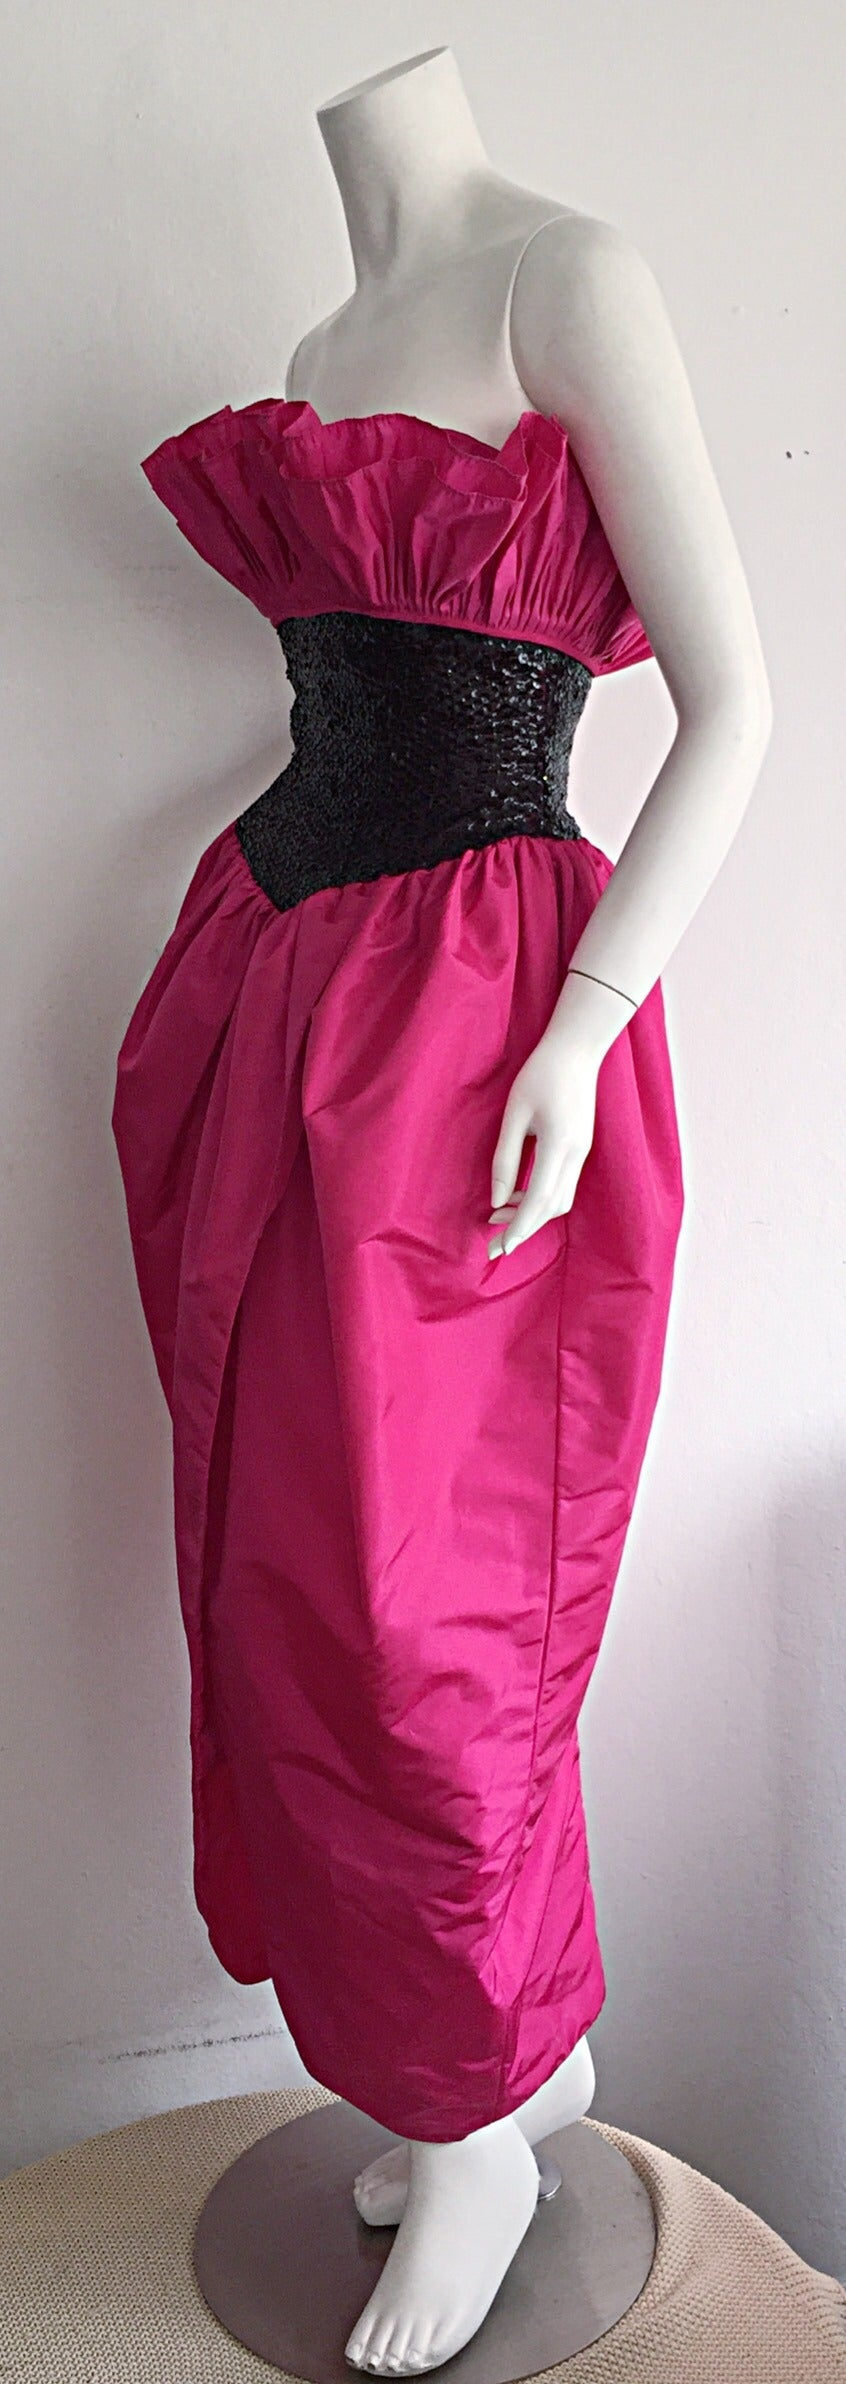 Incredible Vintage Victor Costa for Neiman Marcus Hot Pink Origami Tulip Dress 6